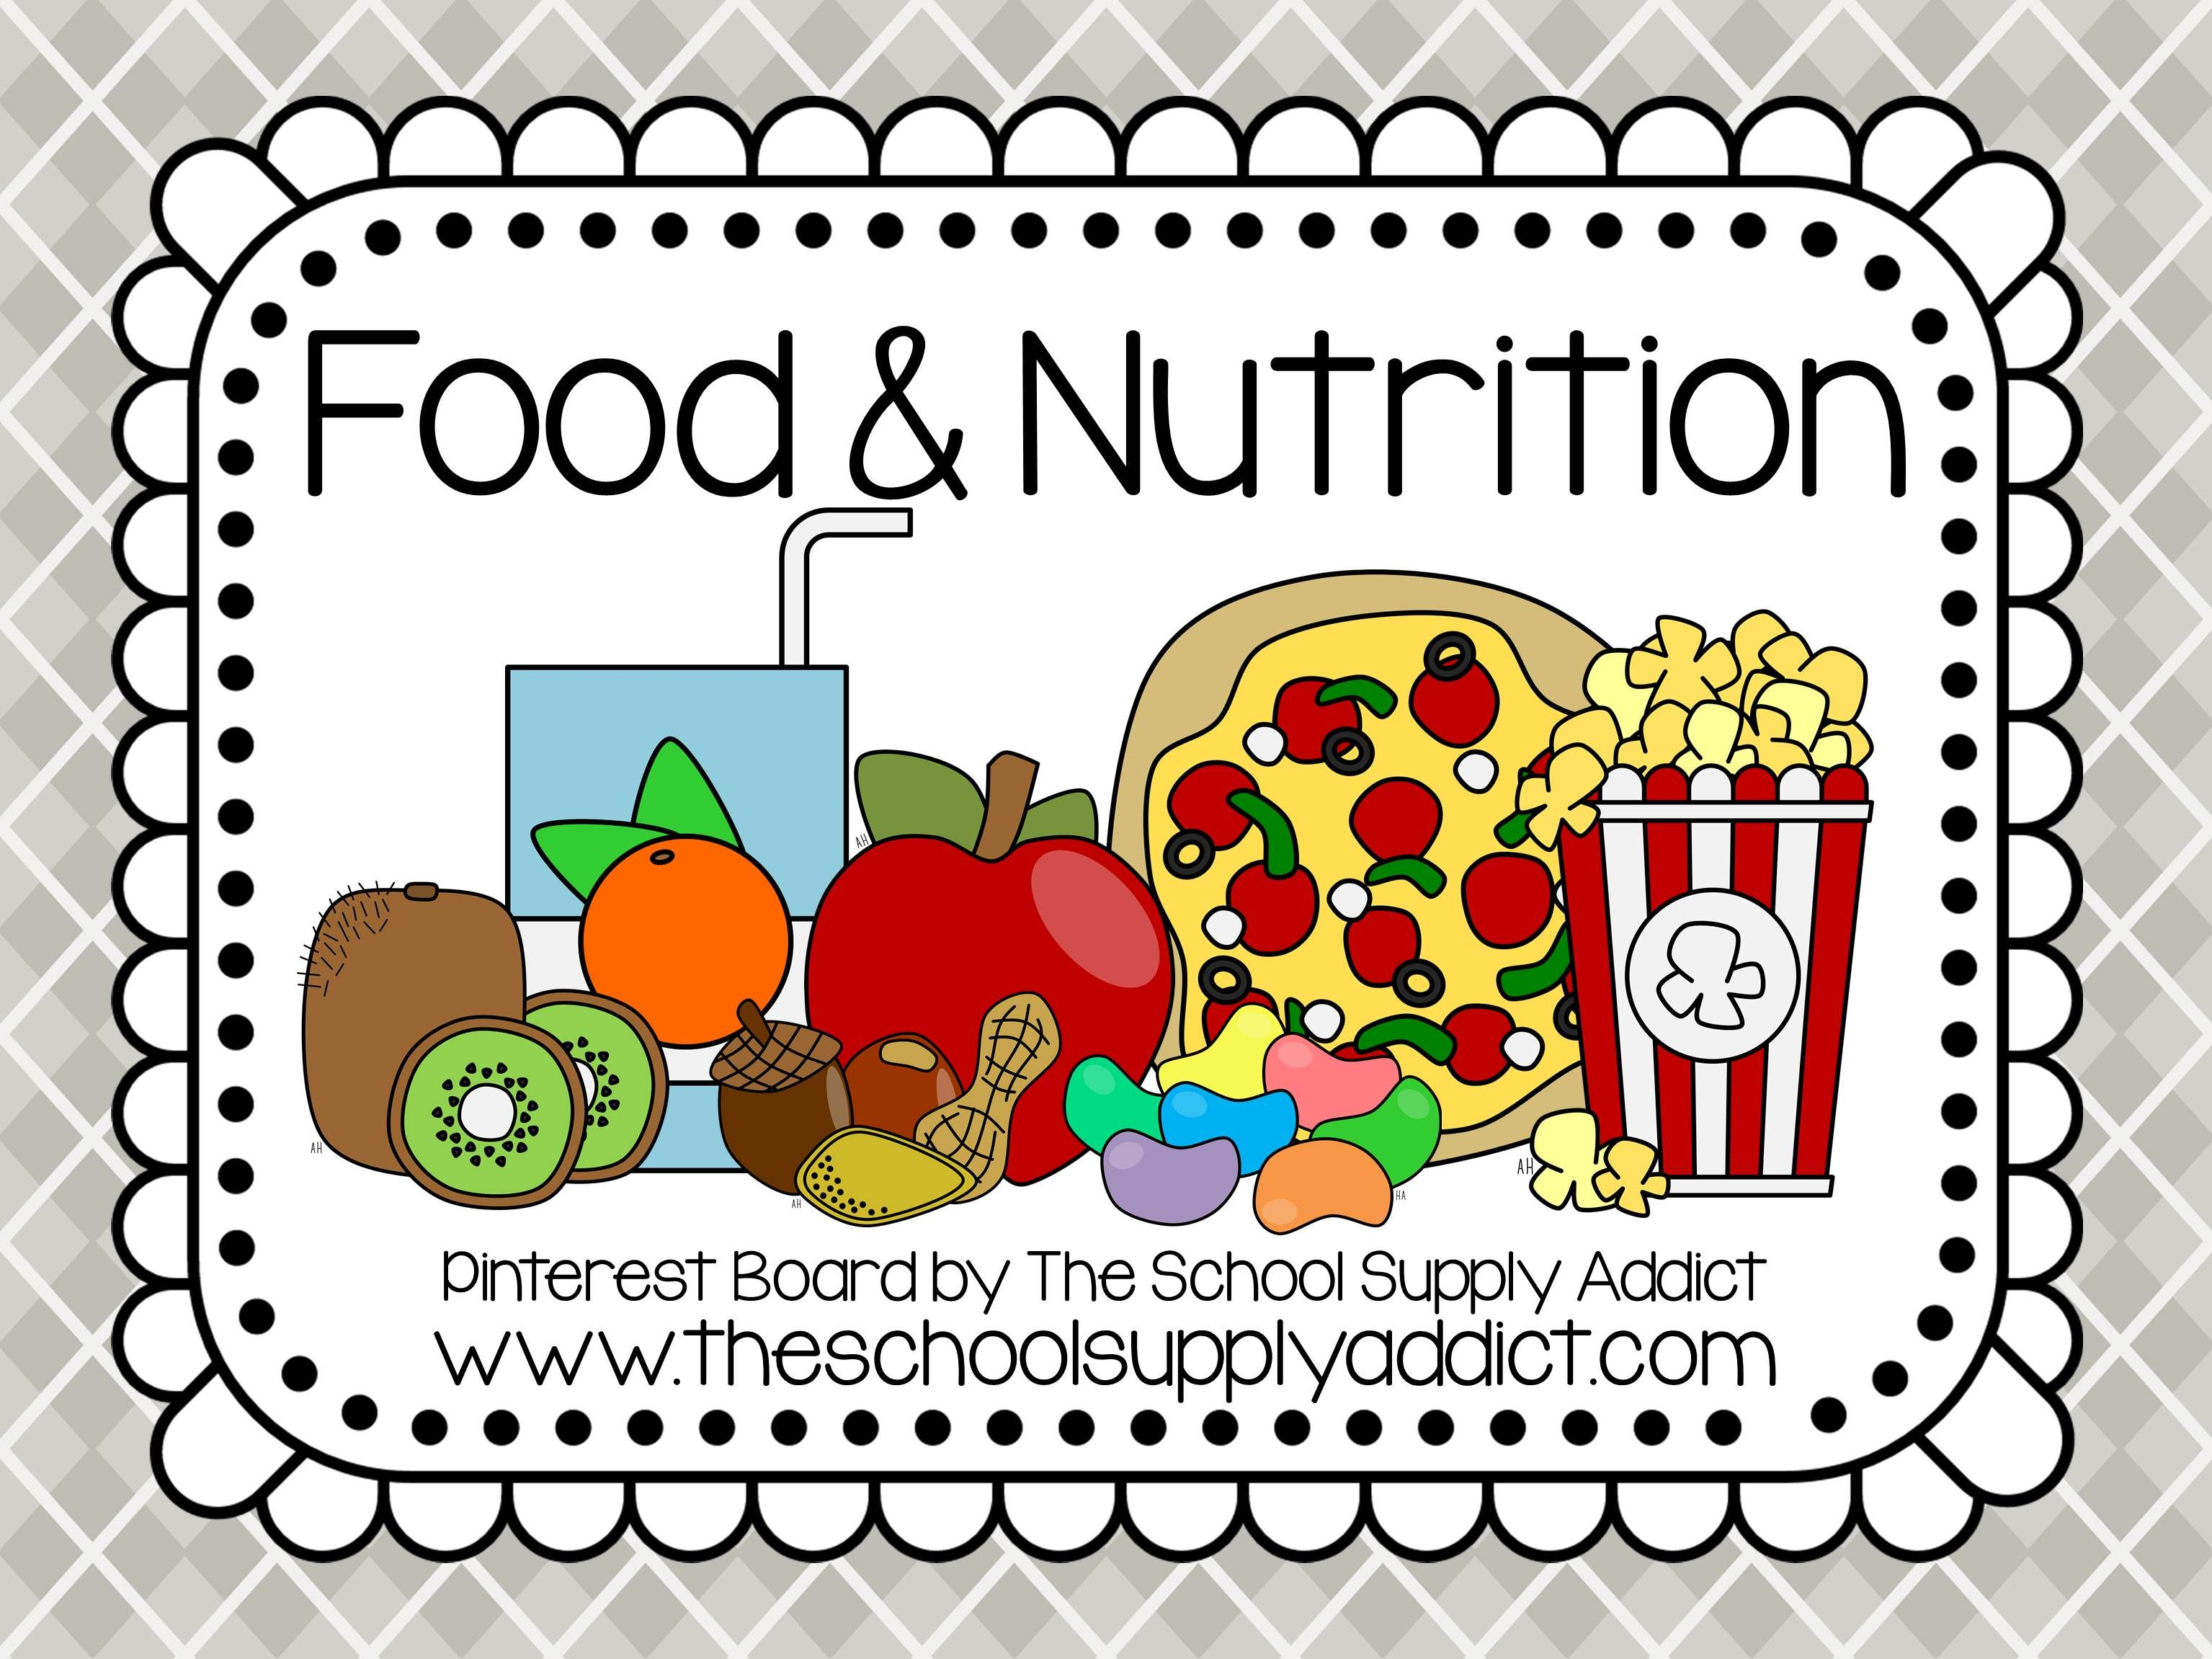 Food Amp Nutrition Pin Board By The School Supply Addict